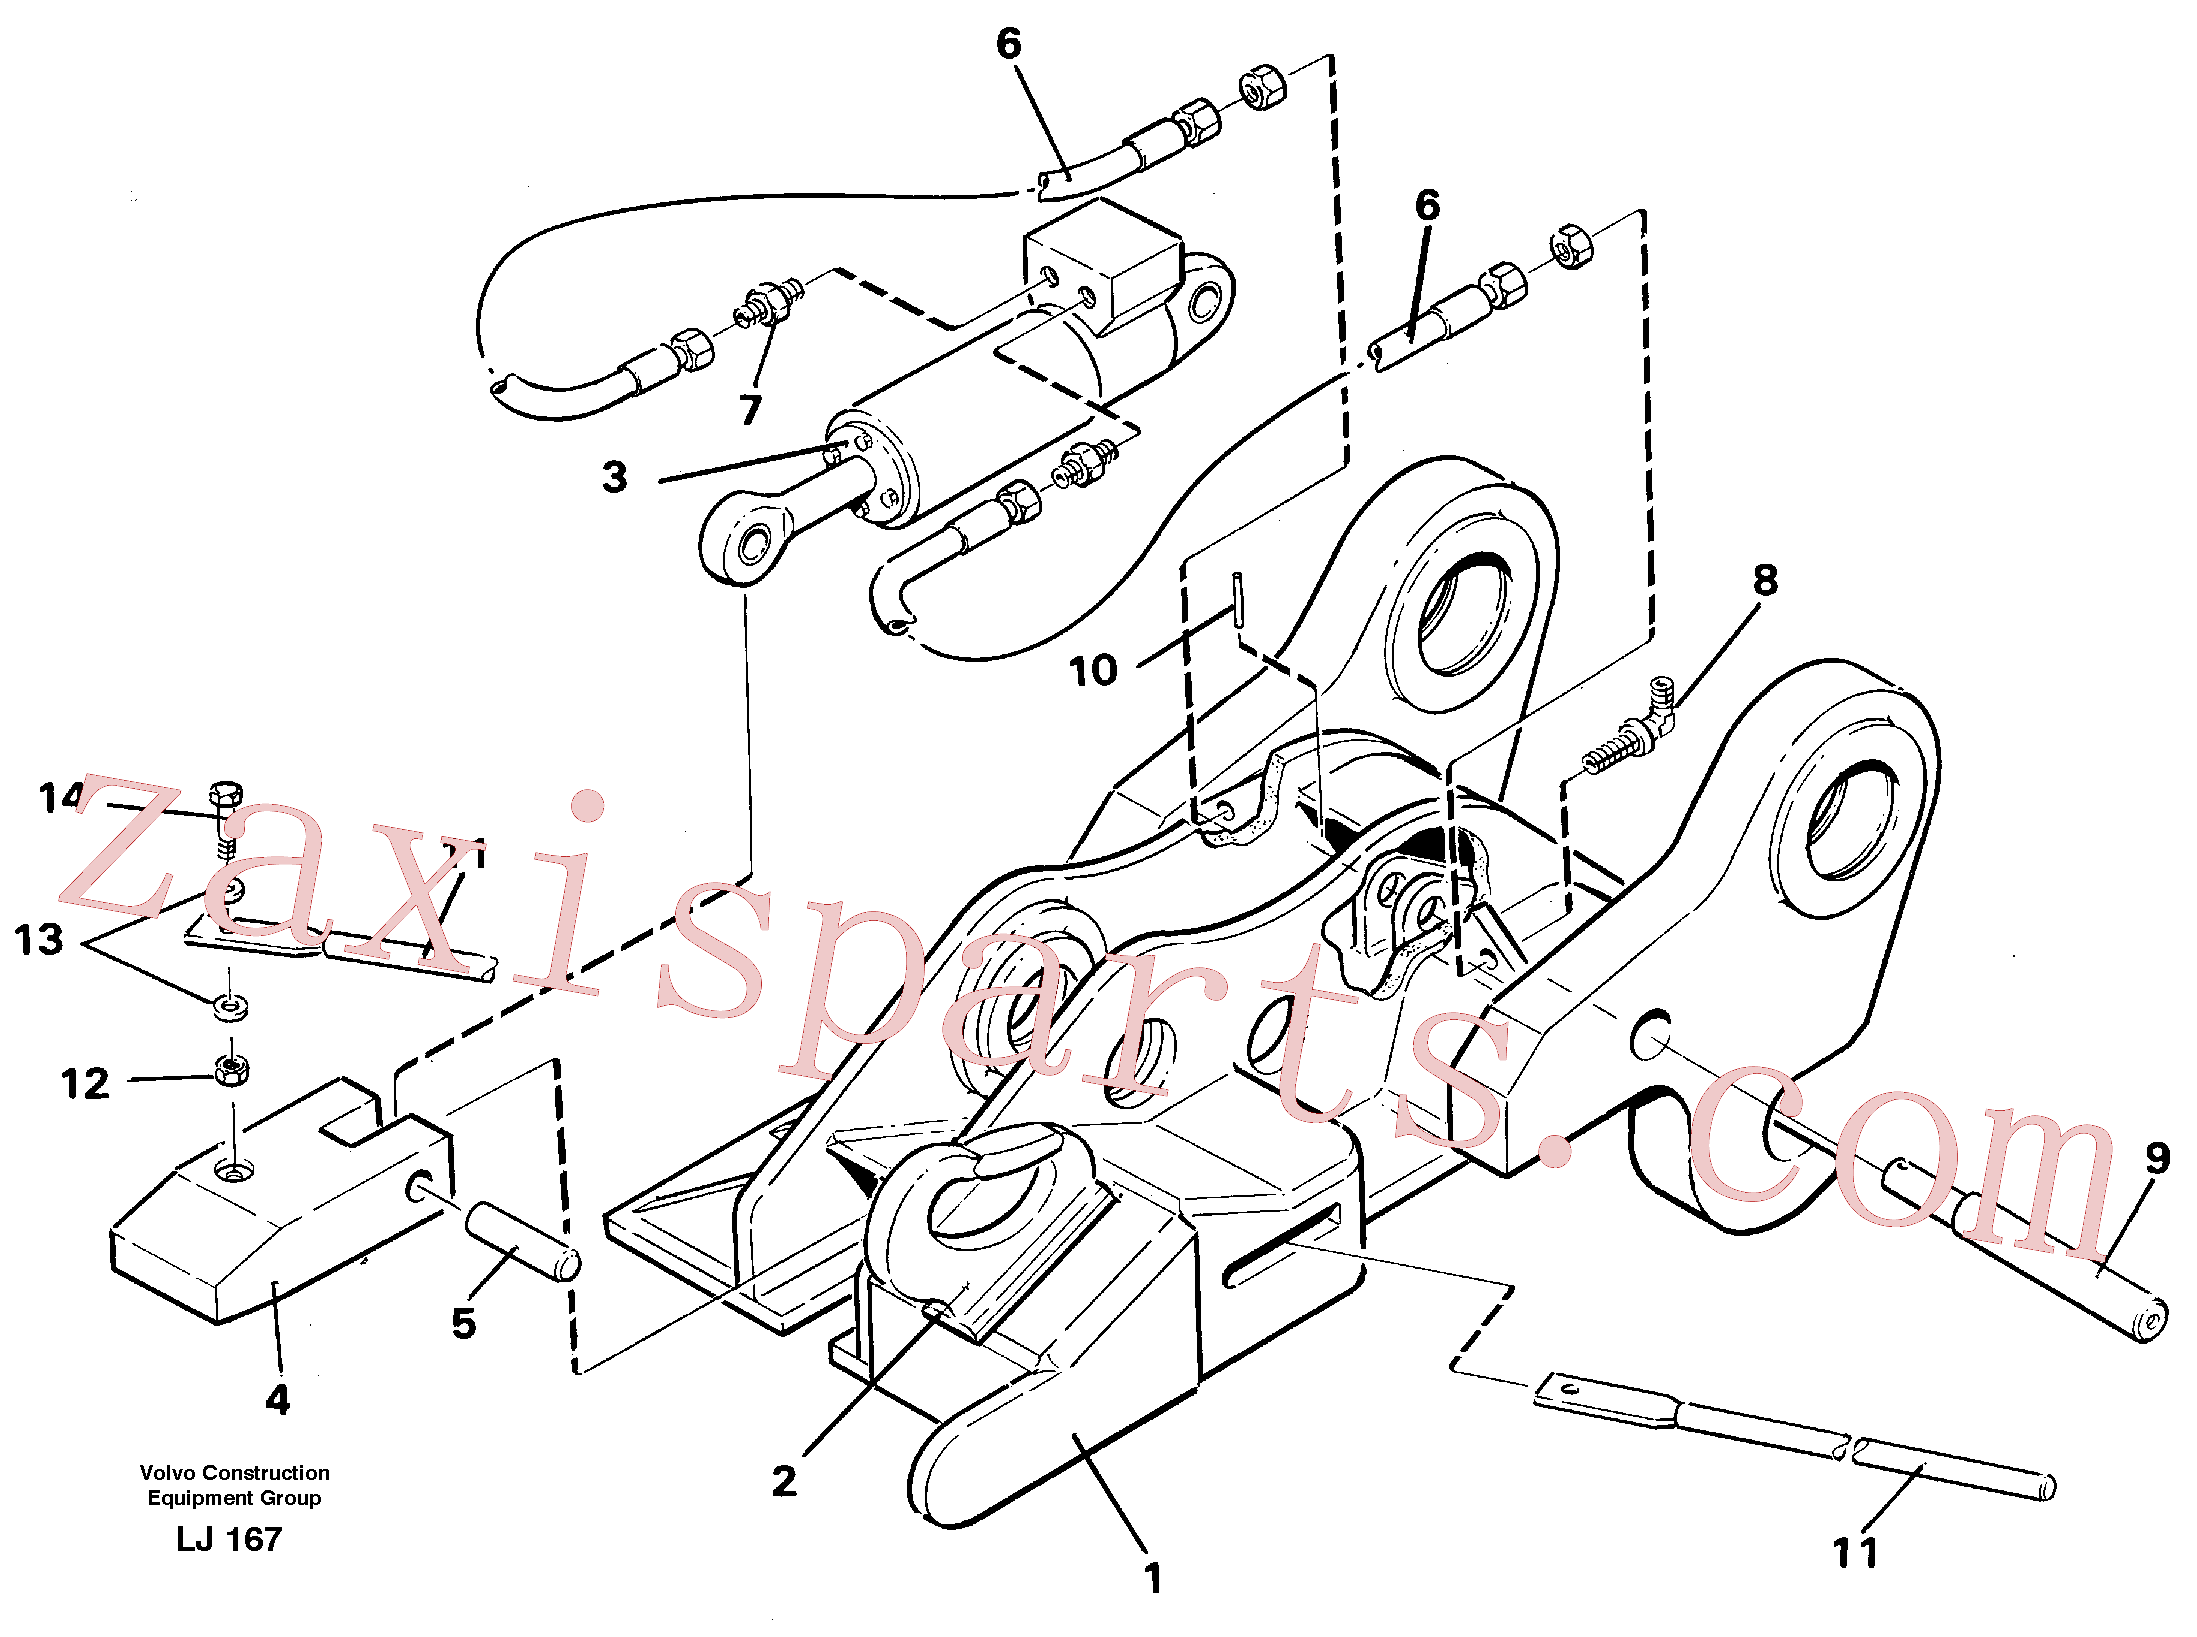 VOE14237587 for Volvo Quickfit, hydraulic(LJ167 assembly)